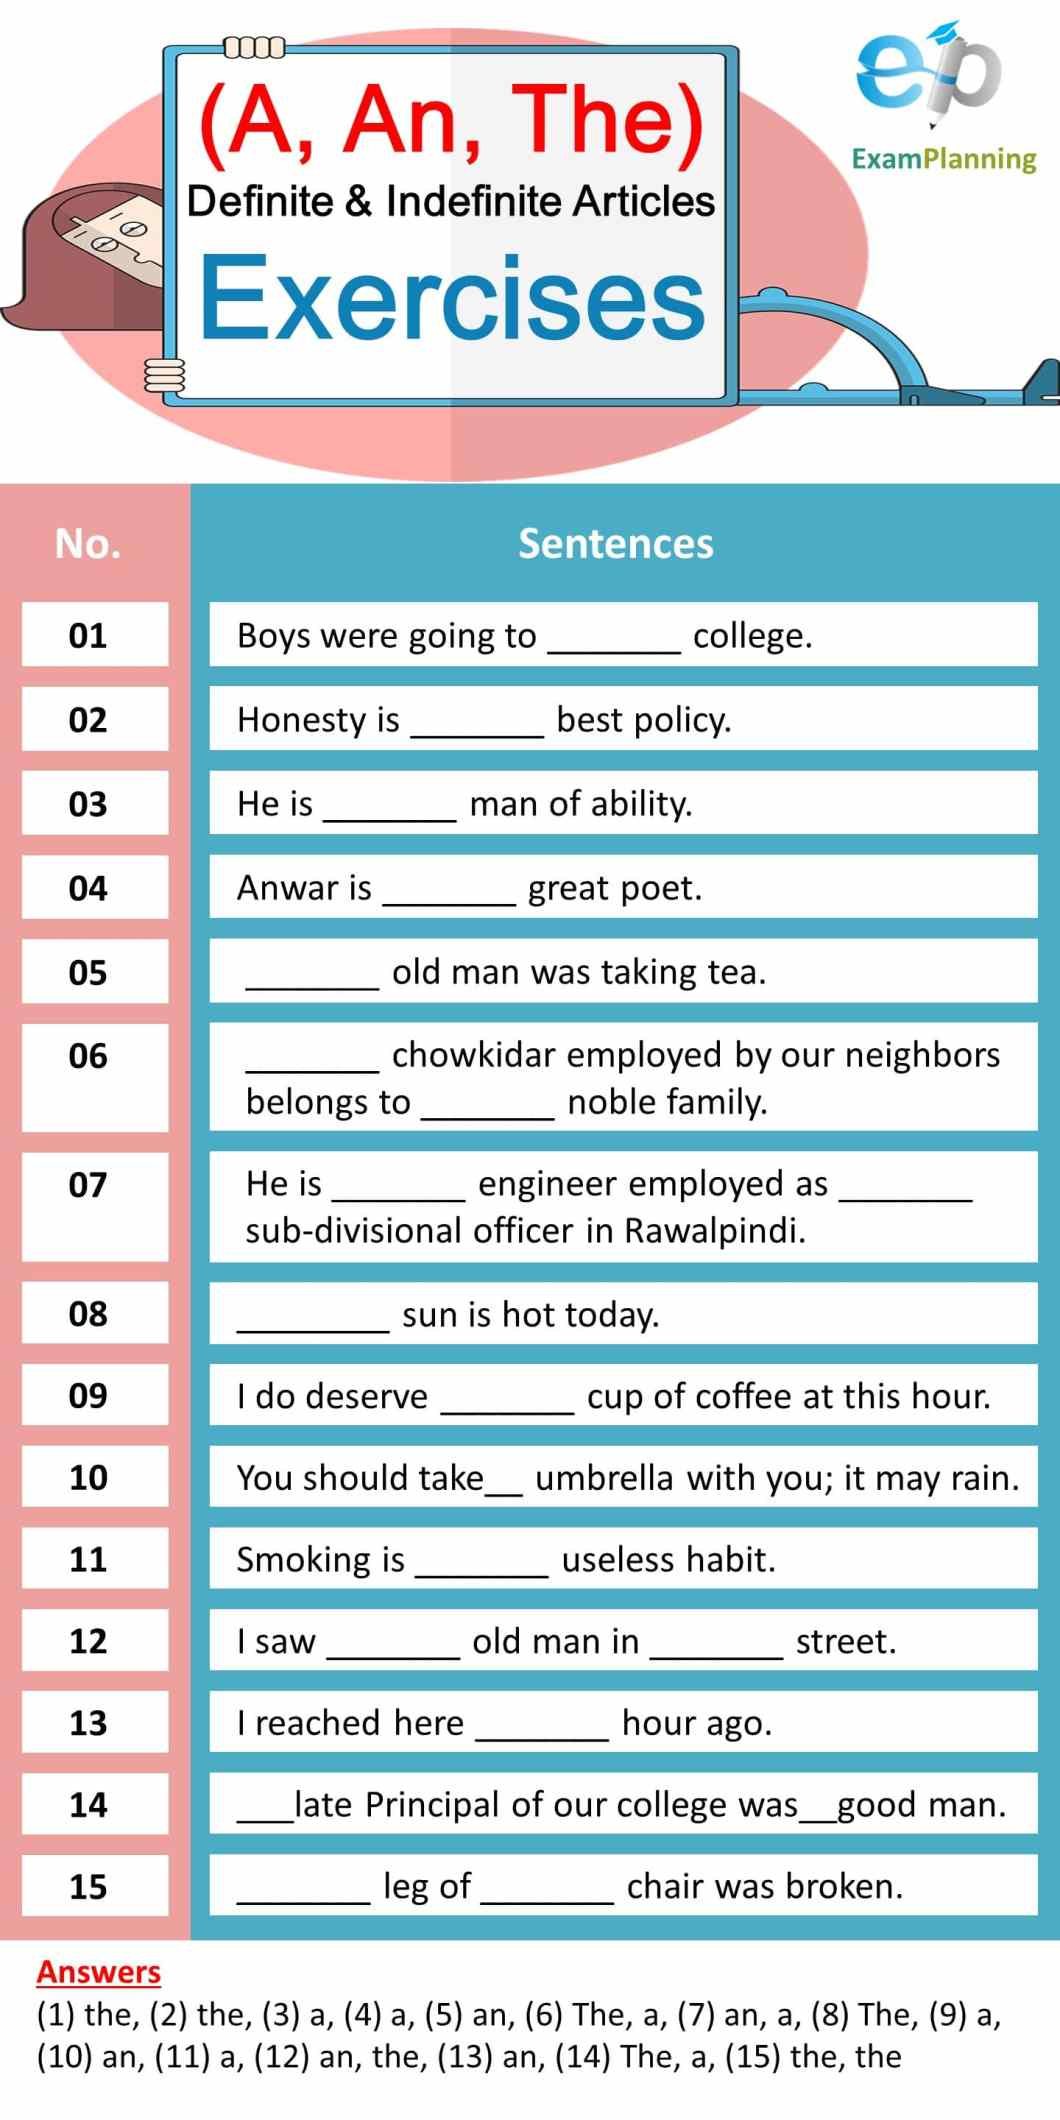 Definite and Indefinite Articles (A, An, The) Exercises